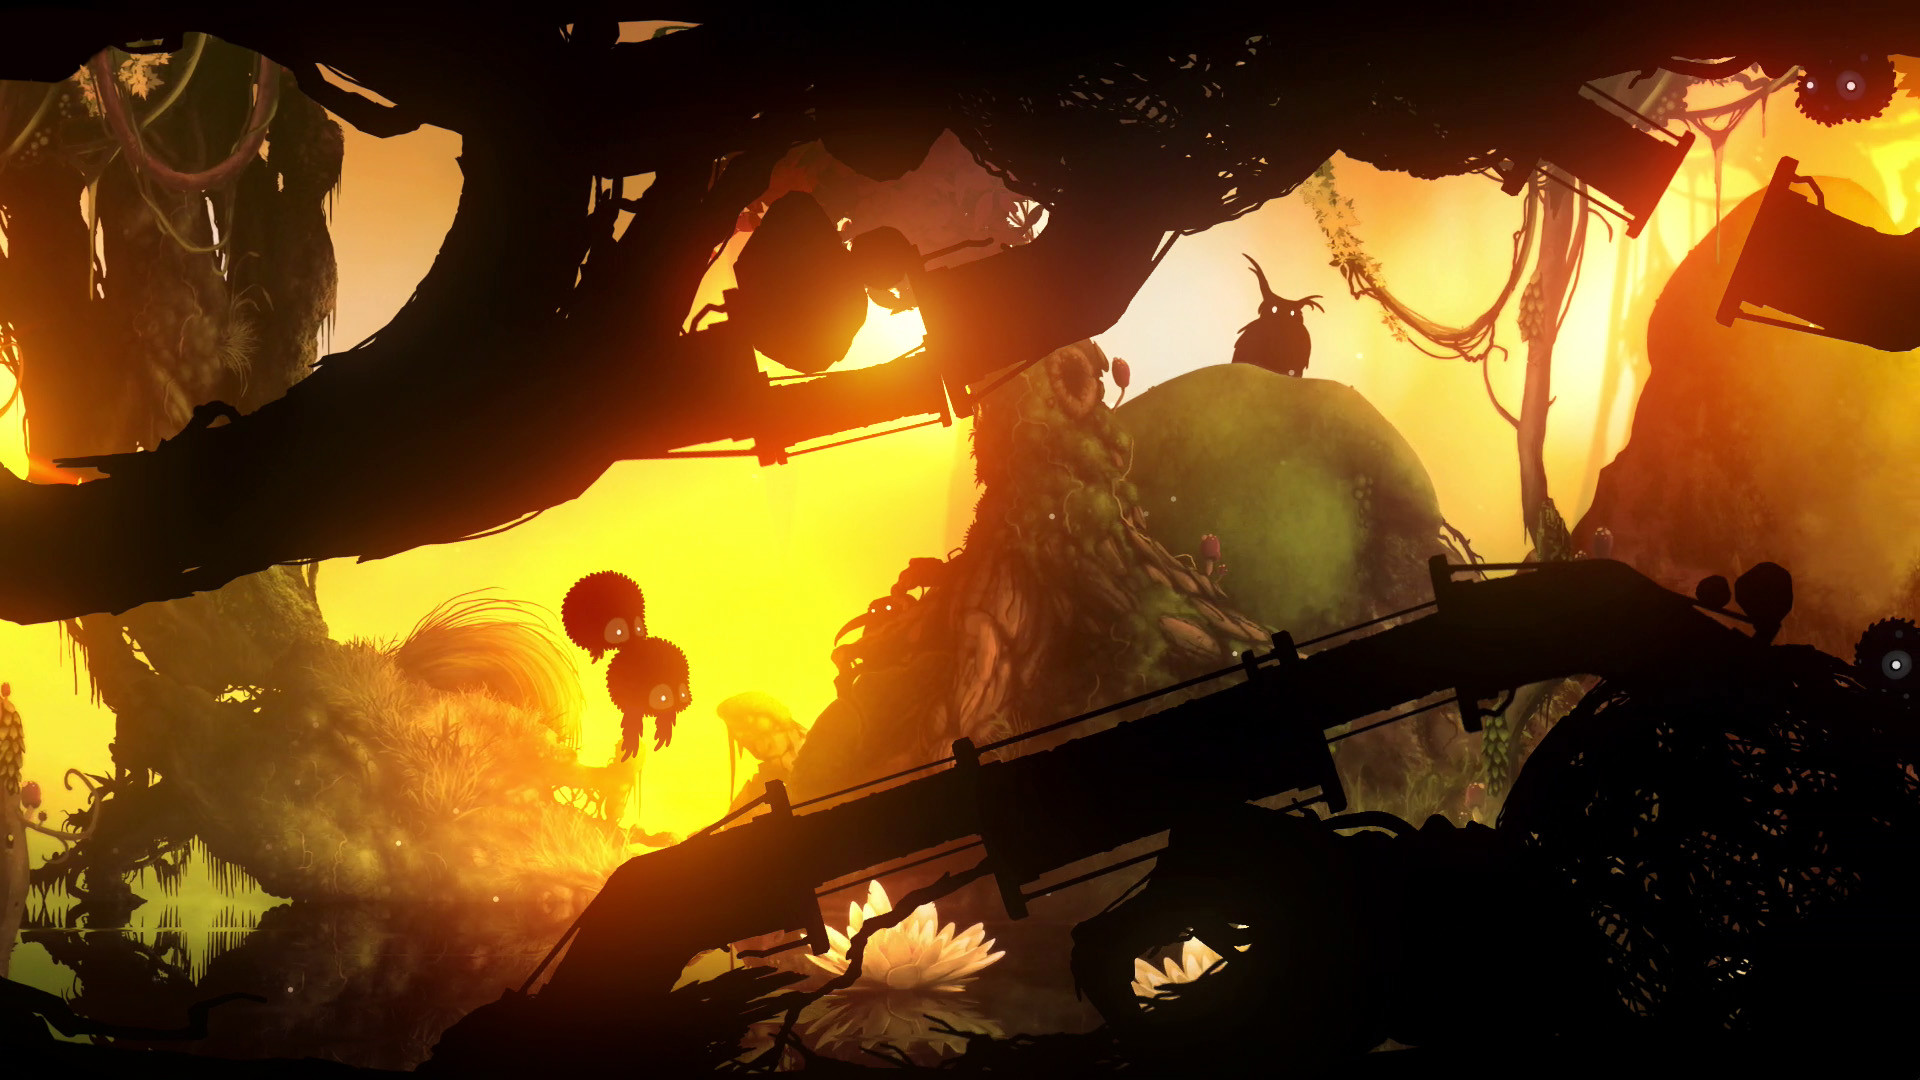 Badland: Game of the Year Edition (RUS|ENG|MULTI12) [RePack] от R.G. Механики